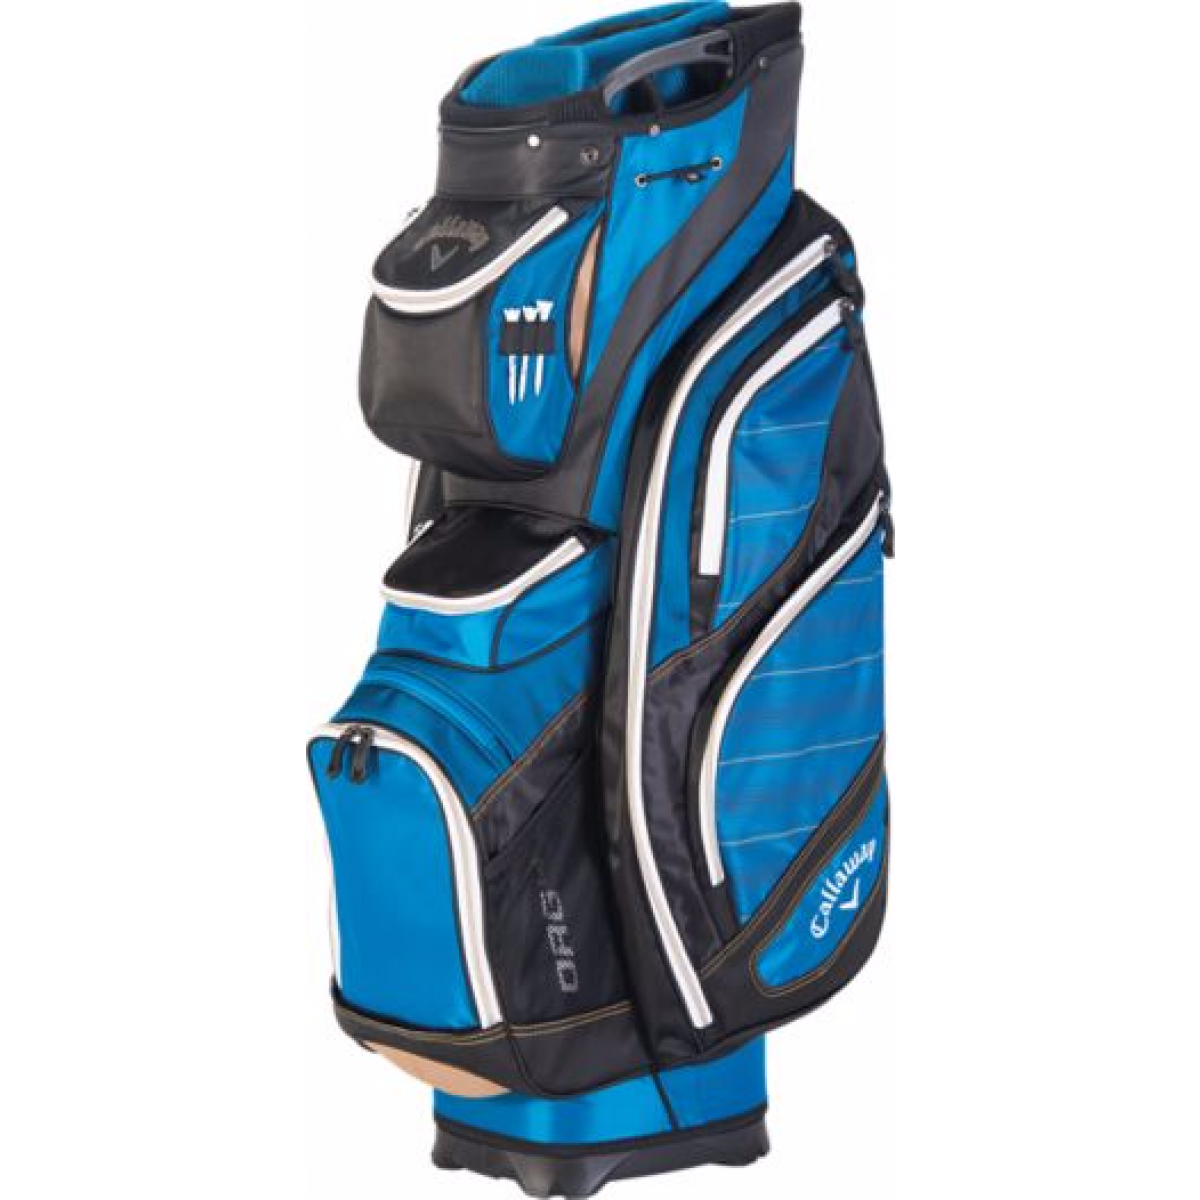 Putter clip golf bag. Callaway org cart from